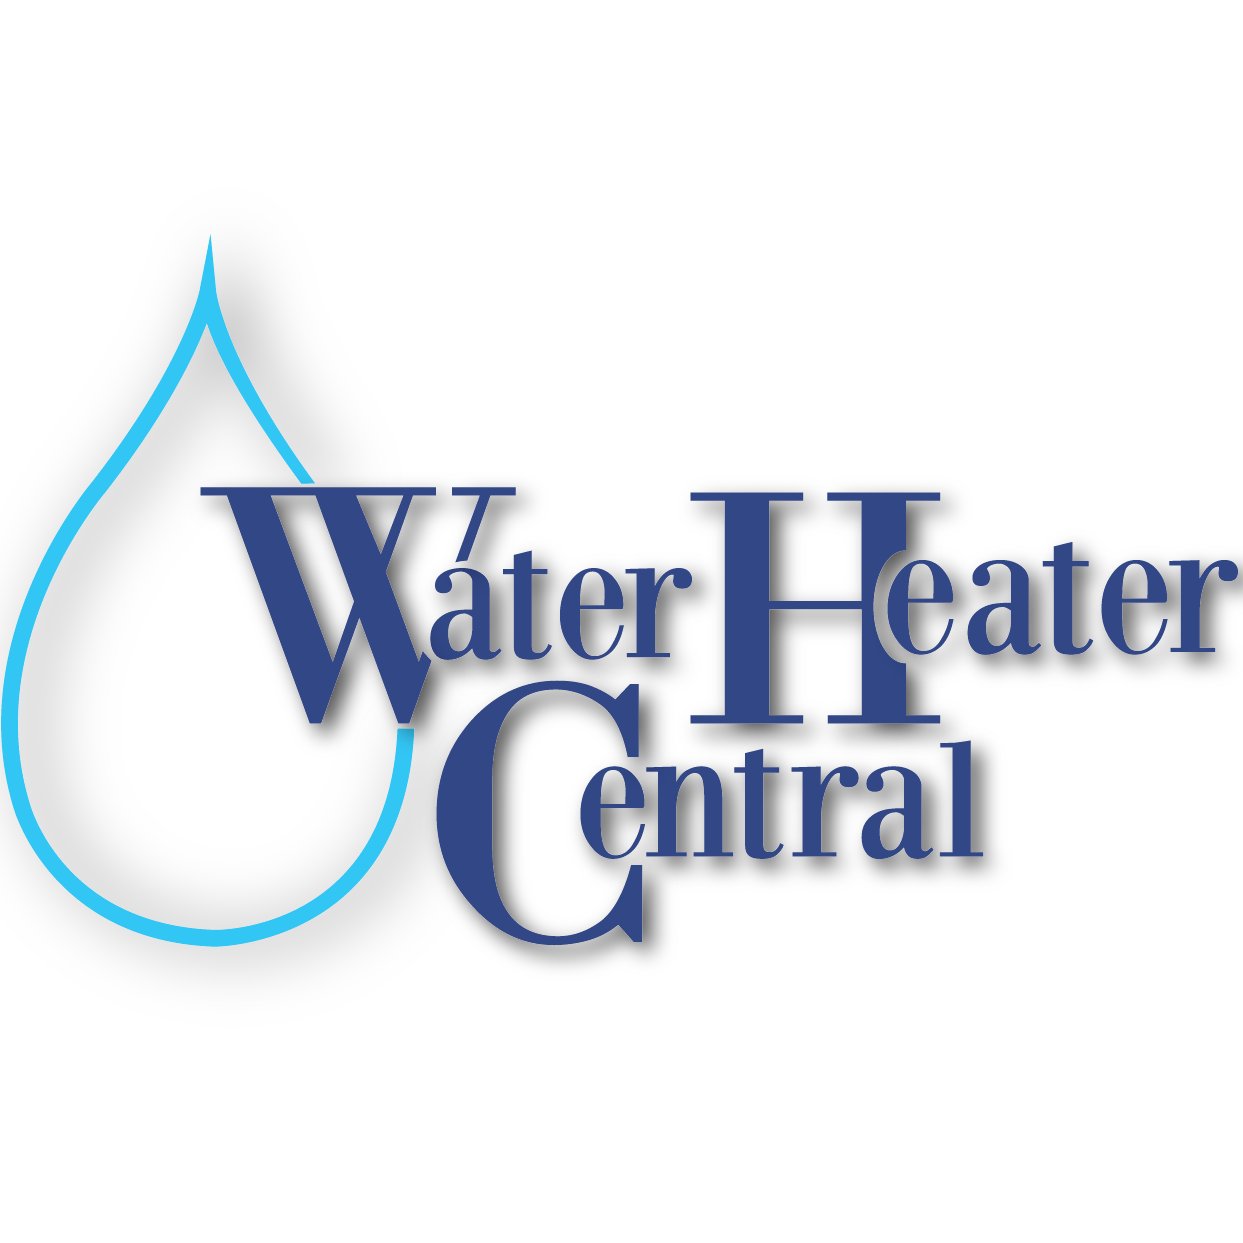 Water Heater Central